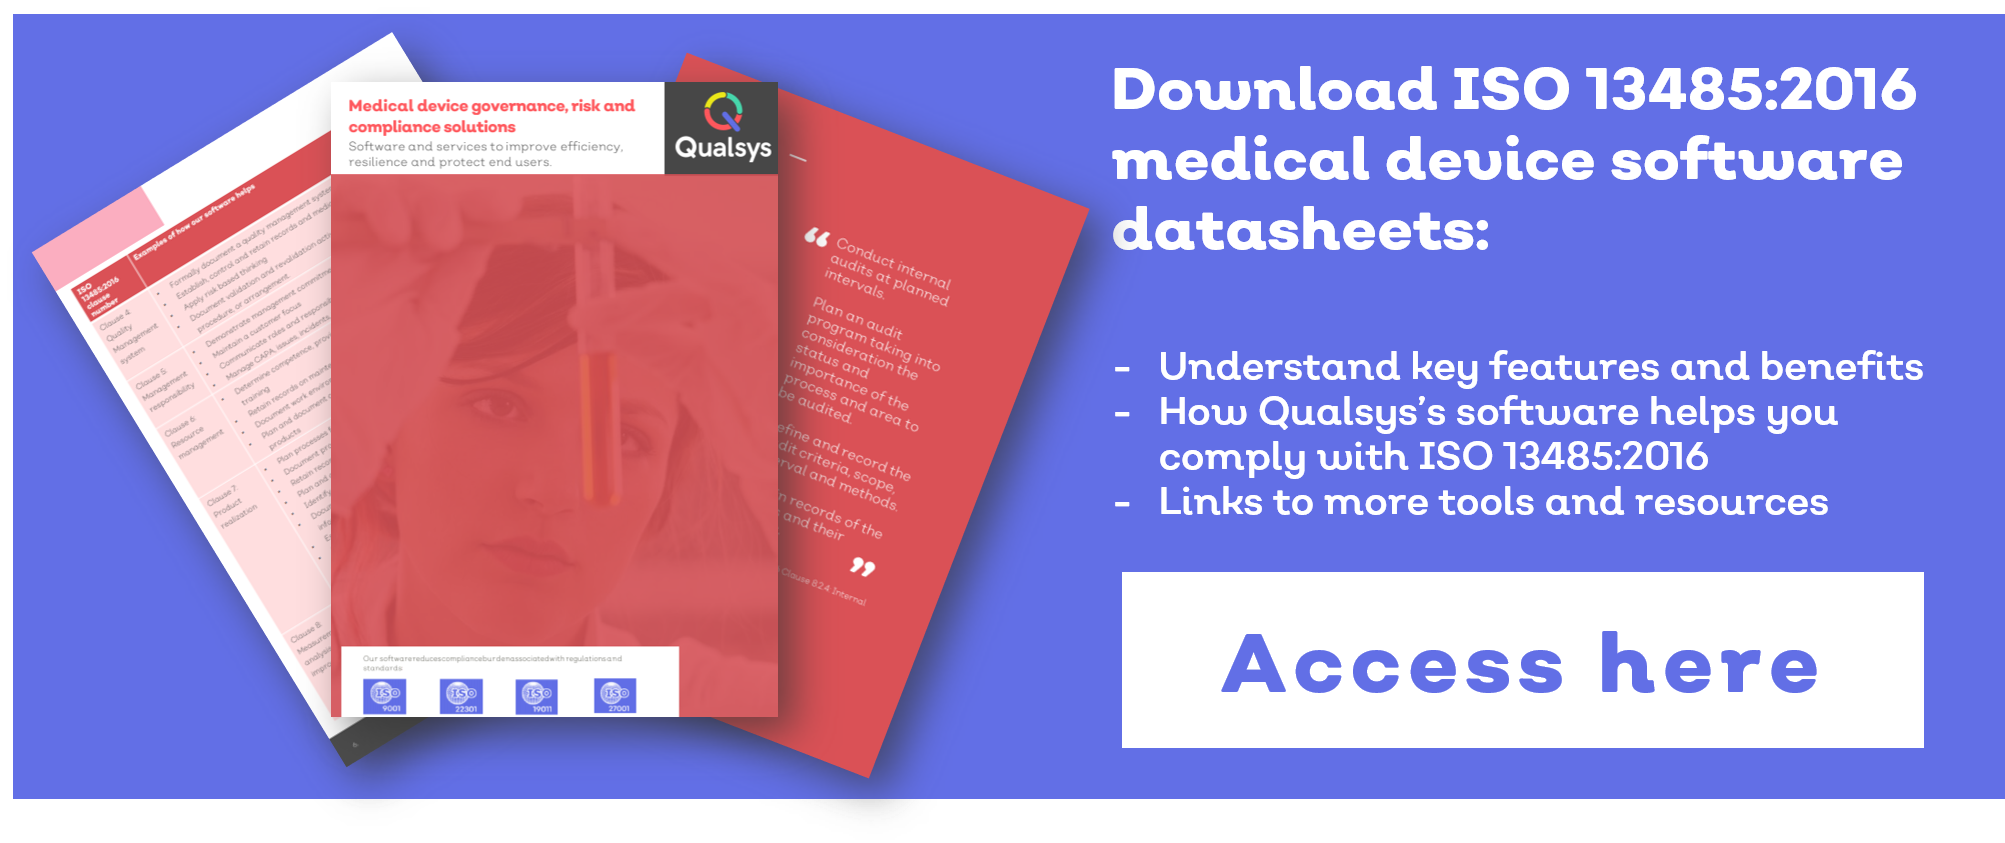 Medical device quality management software datasheet brochure